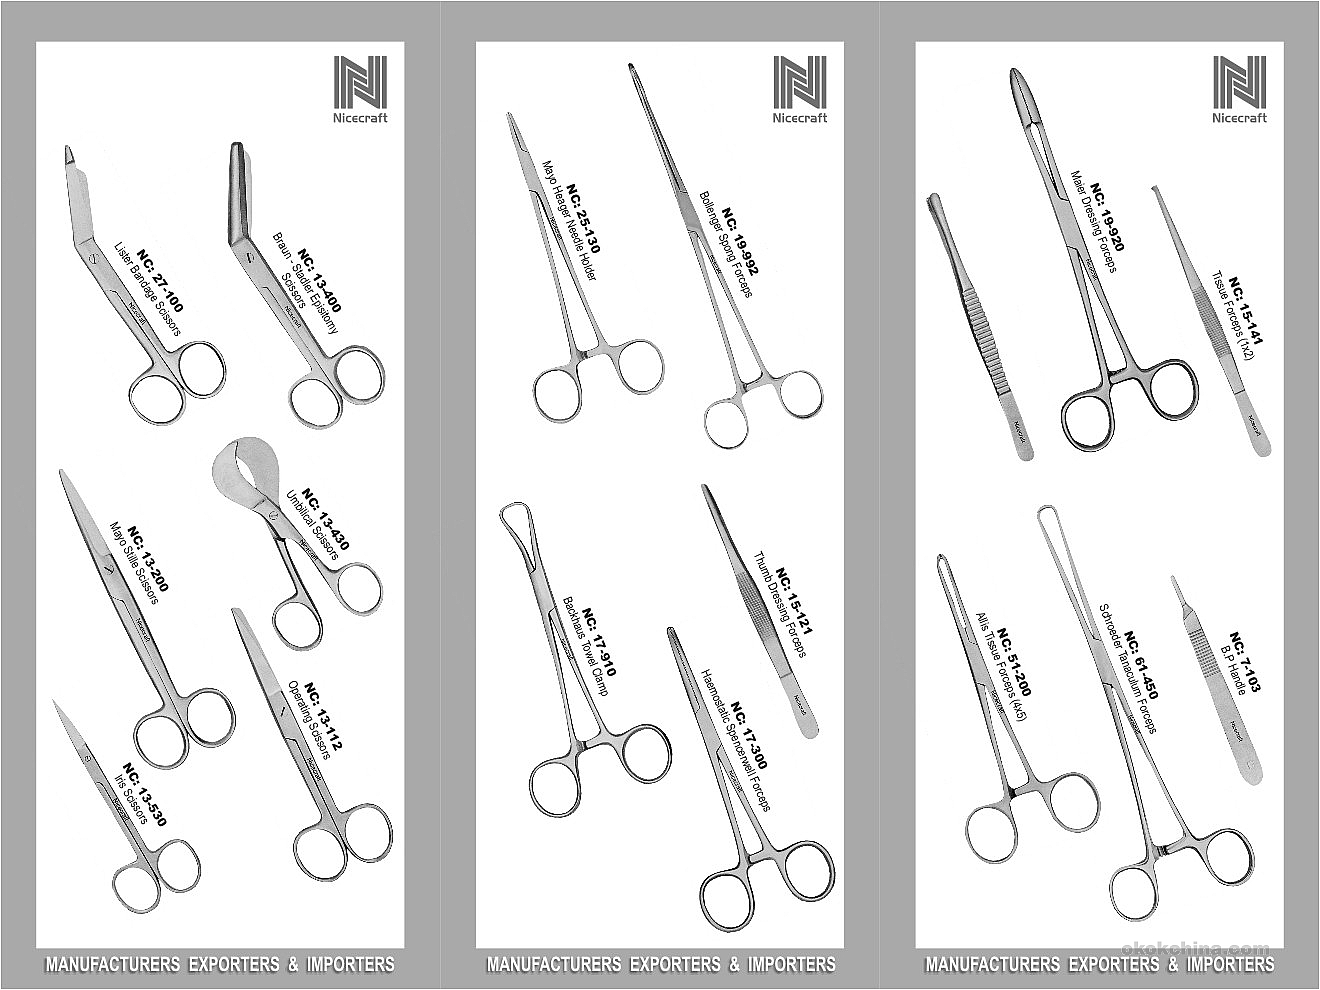 Surgical instruments guide 2017-2018.